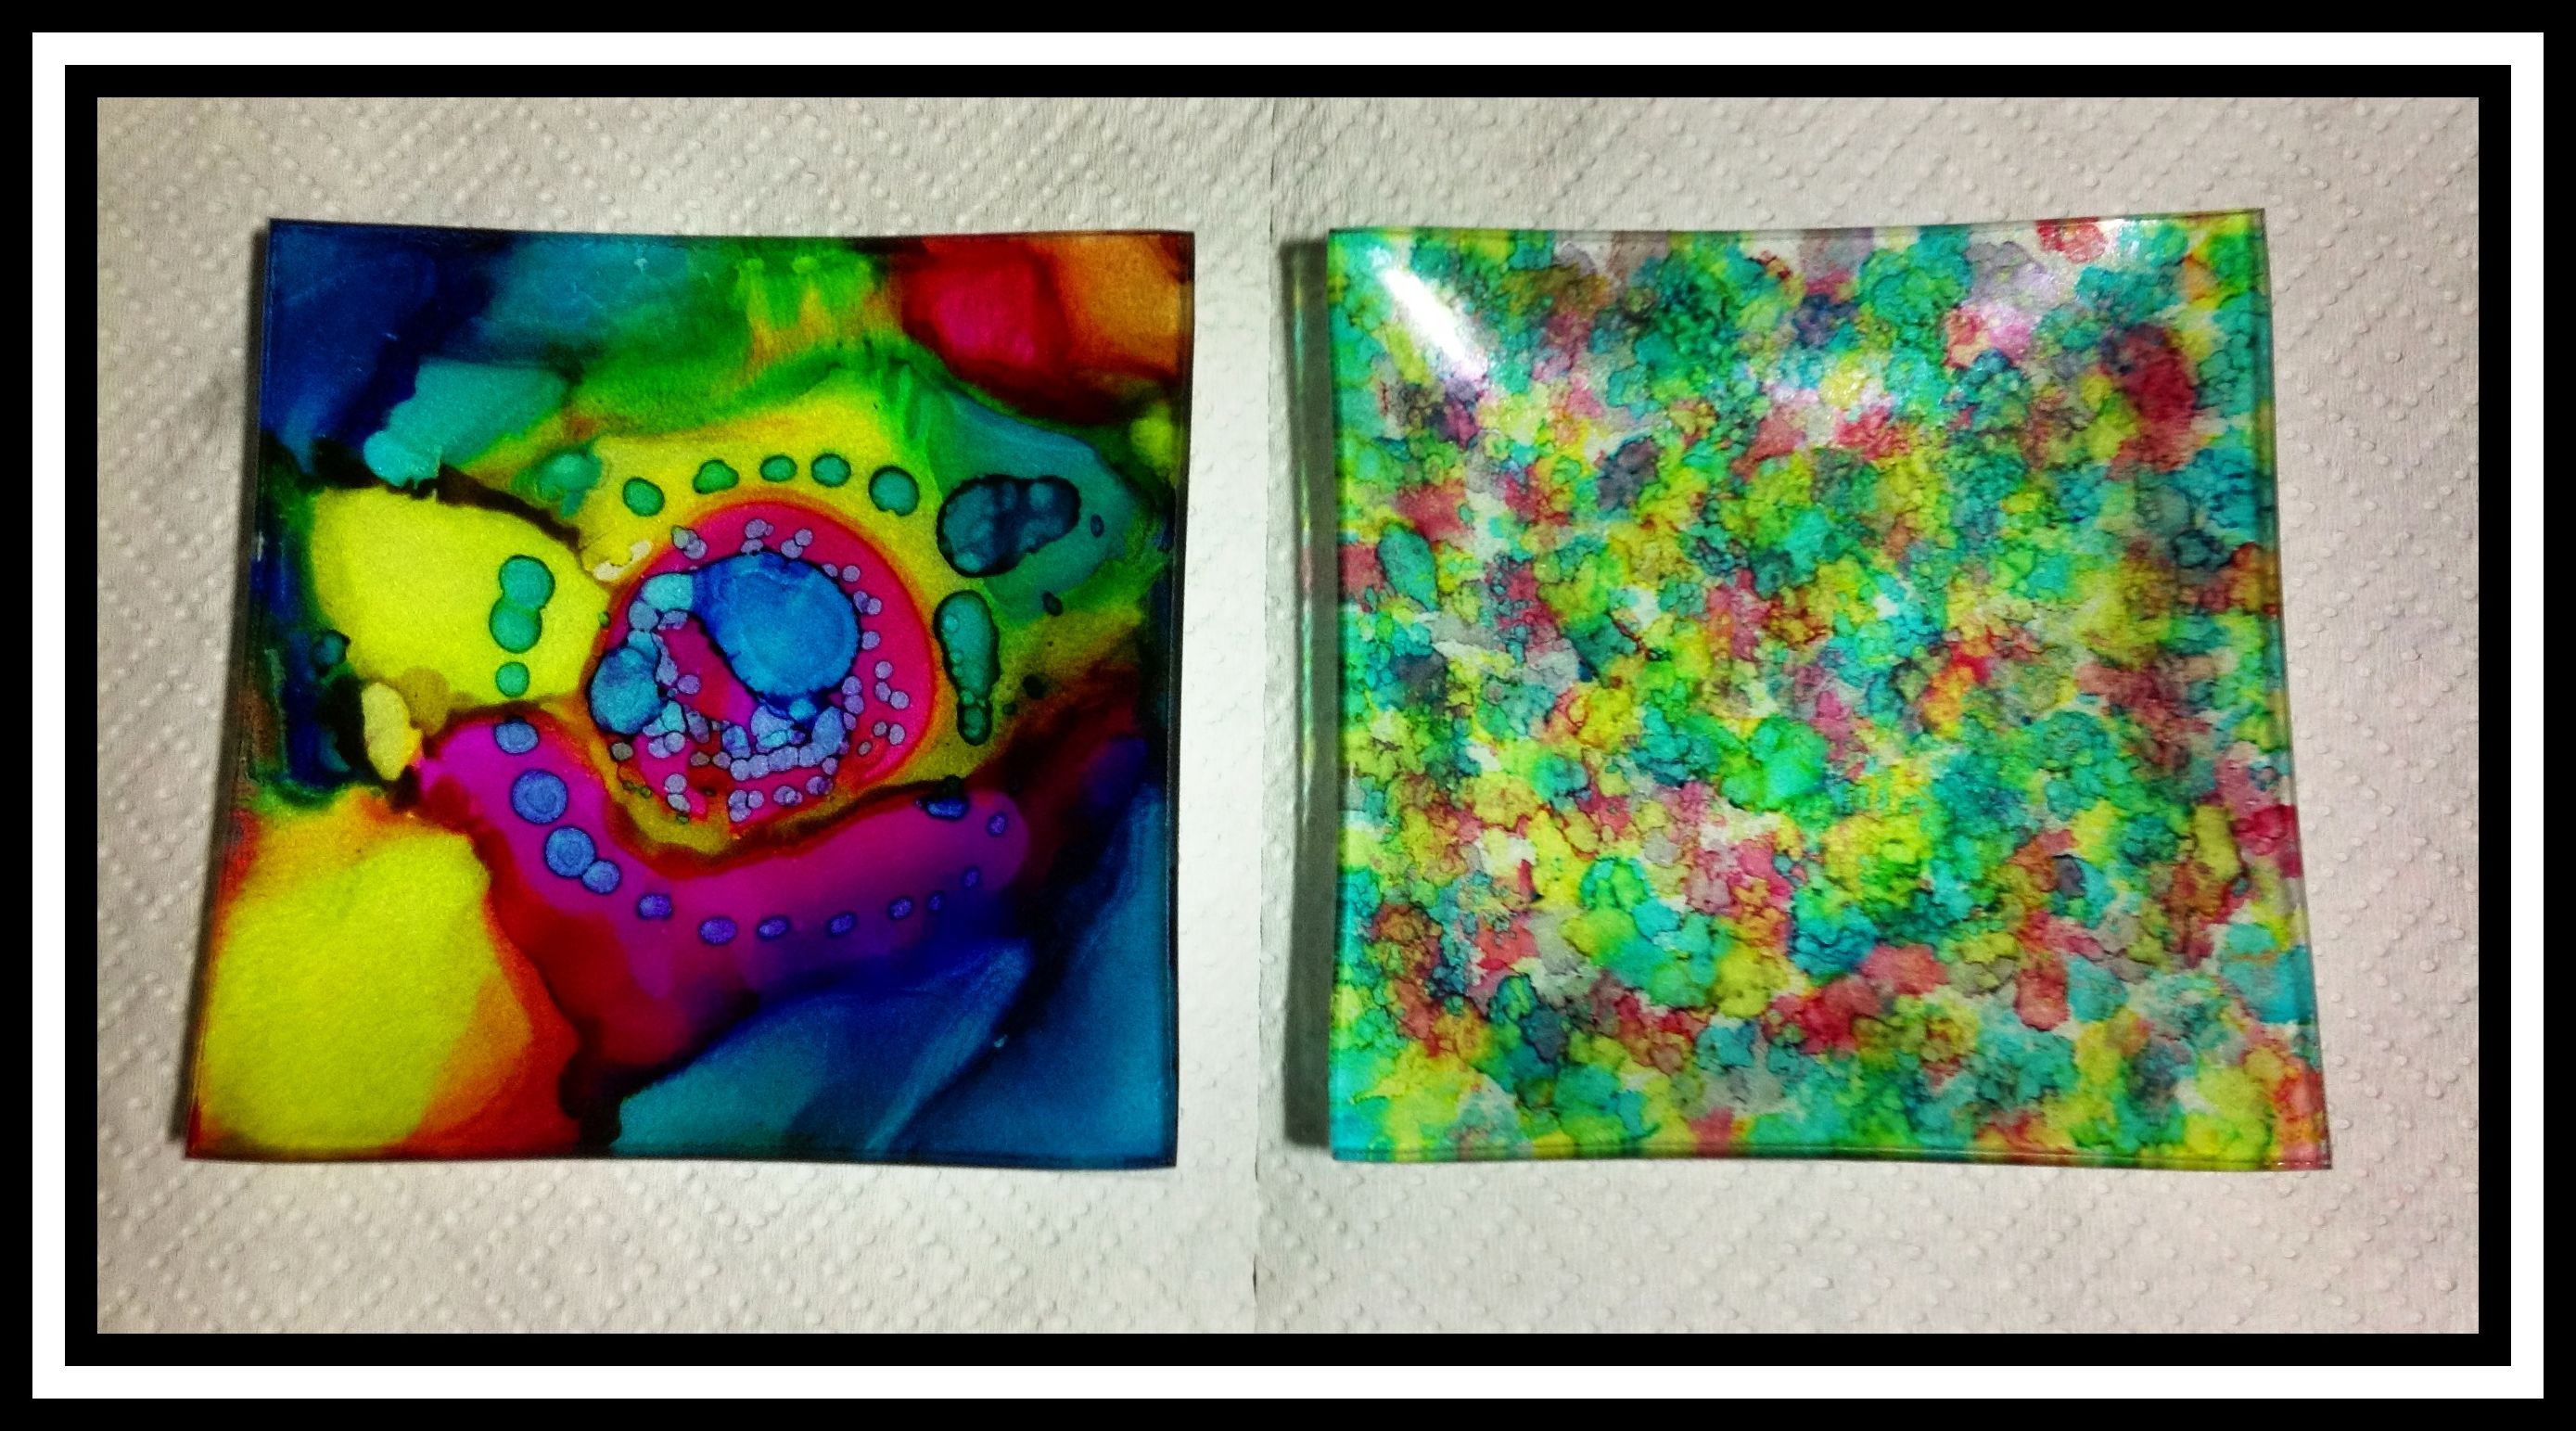 Two different techniques with alcohol inks on small glass plates with white felt underneath